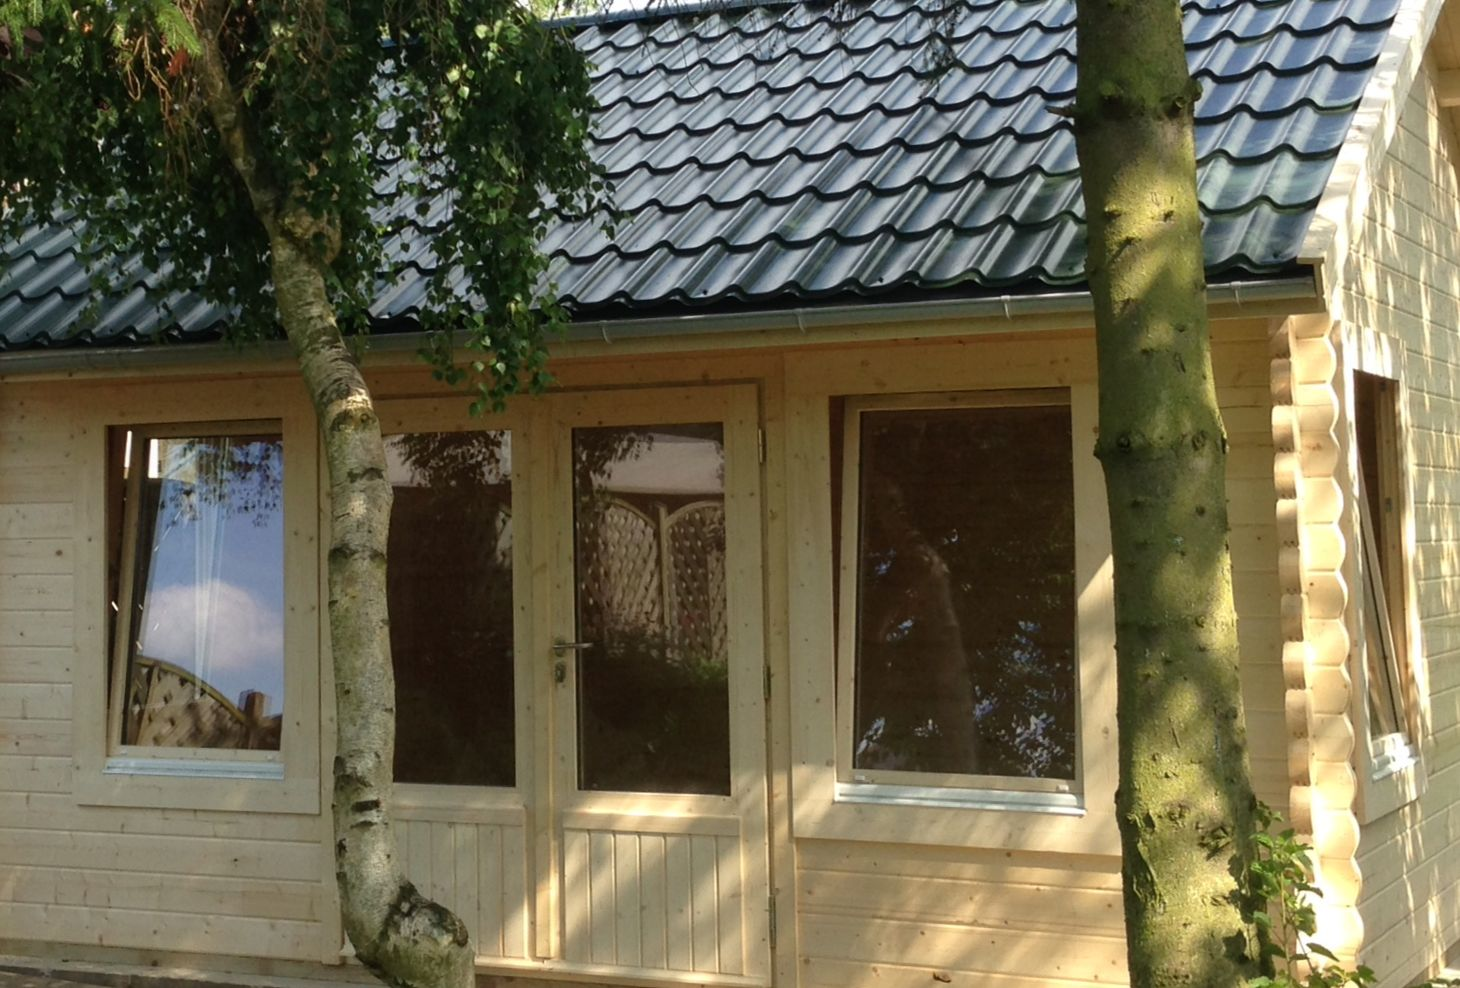 Doors windows keops interlock log cabins for Windows for log cabins